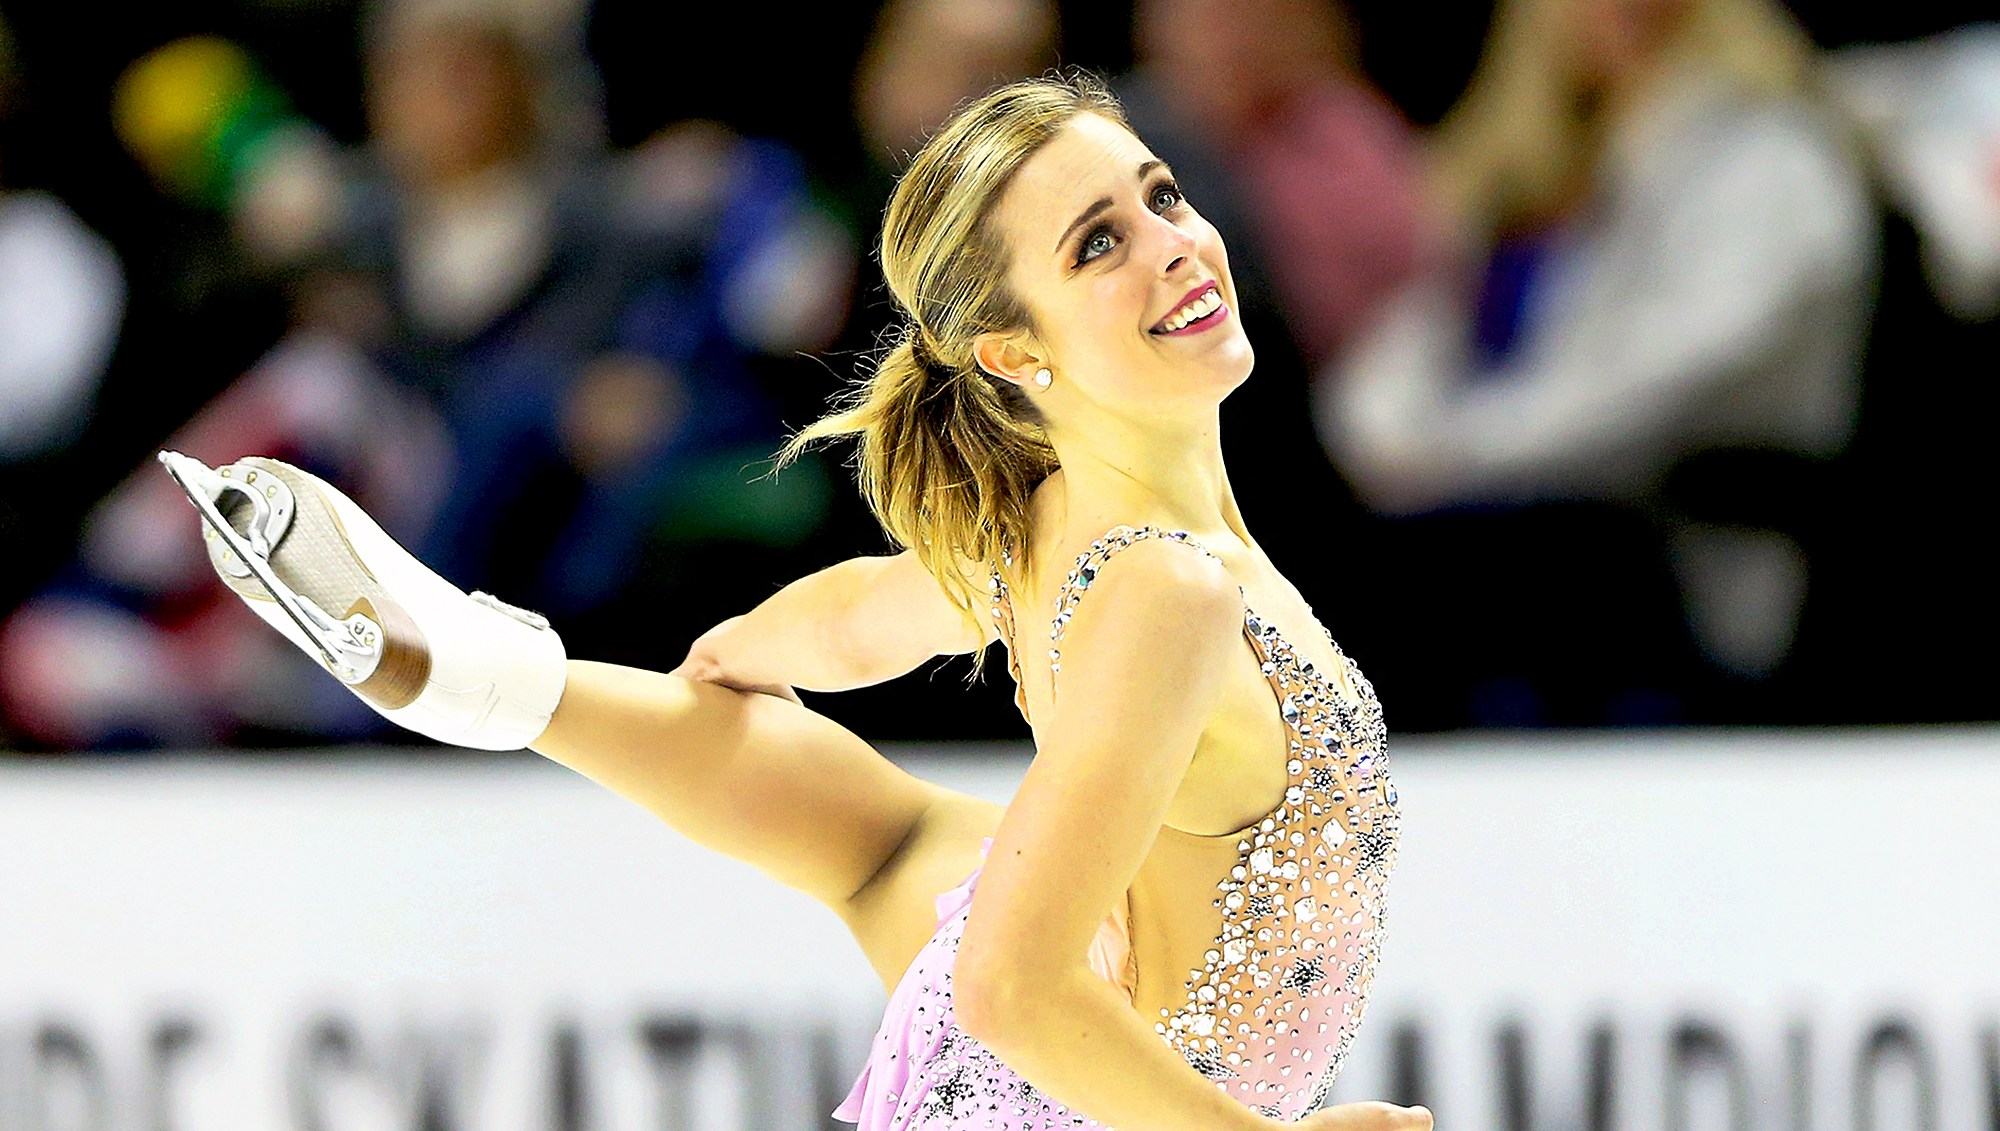 Ashley Wagner competes in the Ladies Free Skate during the 2018 Prudential U.S. Figure Skating Championships at the SAP Center on January 5, 2018 in San Jose, California.